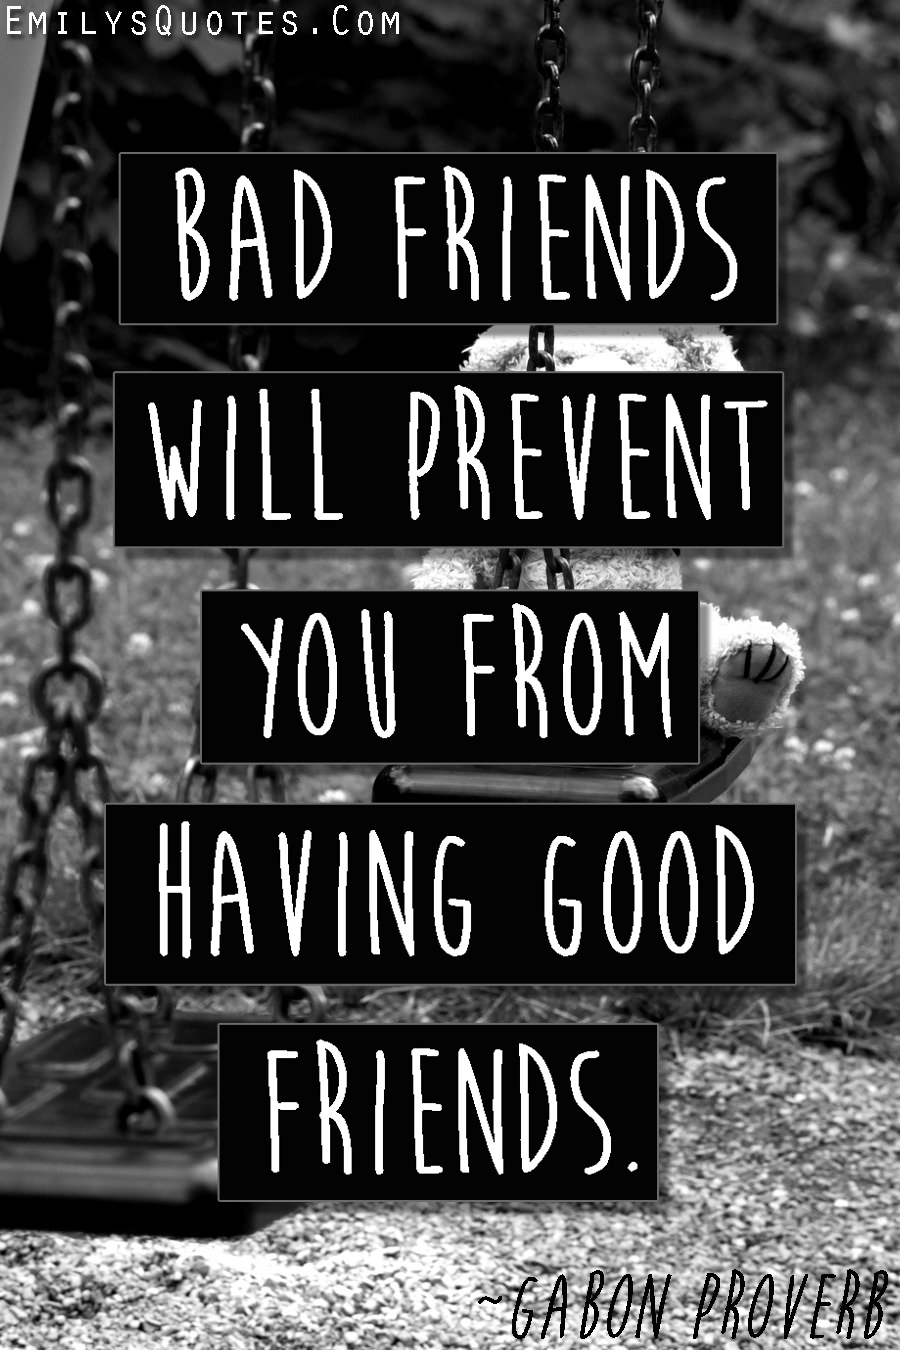 Quotes About Bad Friendships Bad Friends Will Prevent You From Having Good Friends  Popular